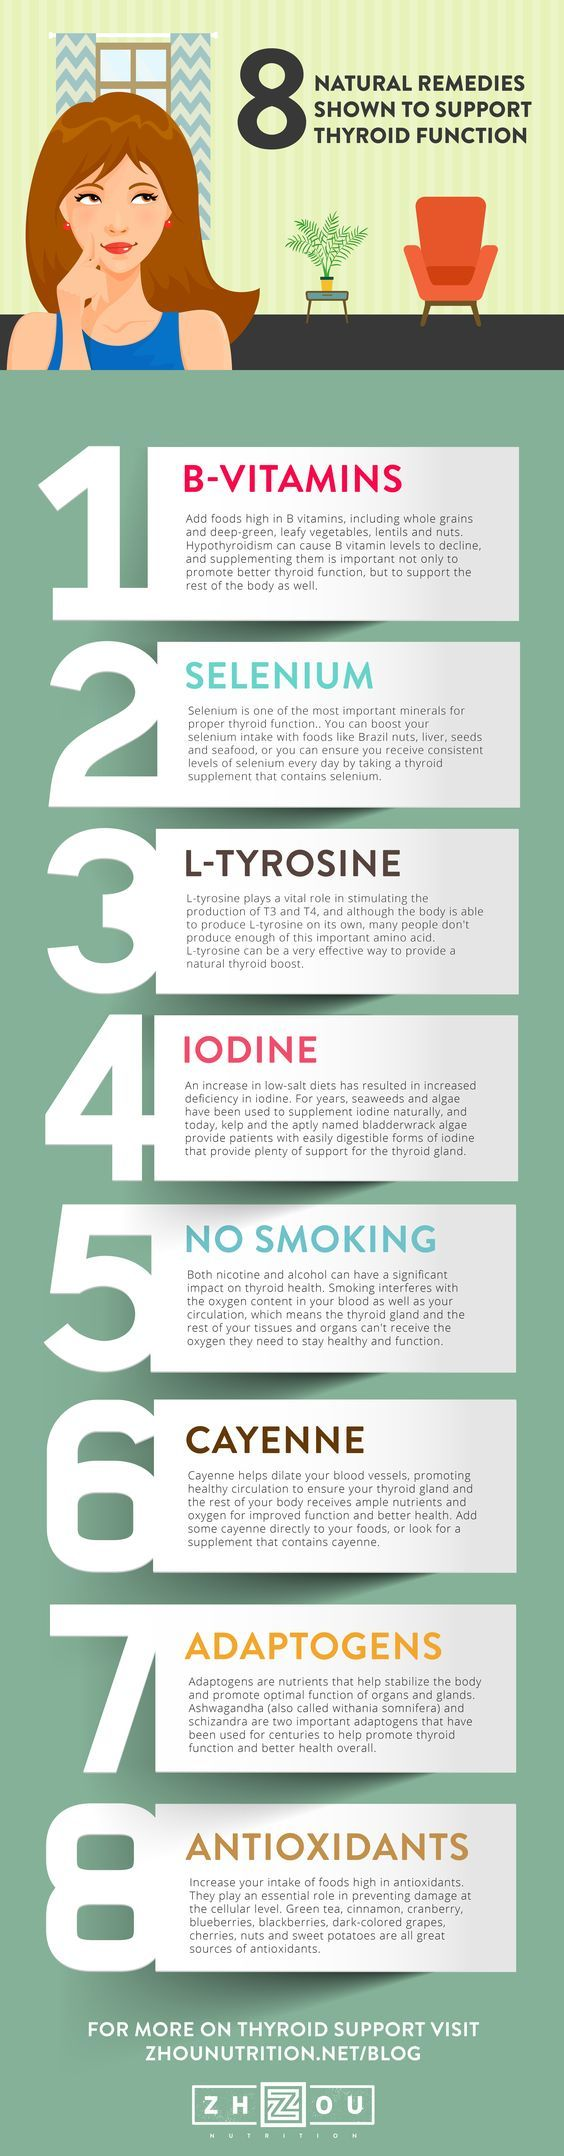 If you've been diagnosed with an under active thyroid, here's what you should consider when choosing a thyroid supplement for thyroid support: 1. Add foods high in B vitamins, including whole grains and deep-green, leafy vegetables, lentils and nuts. Hypothyroidism can cause B vitamin levels to decline, and supplementing them is important not only to promote …